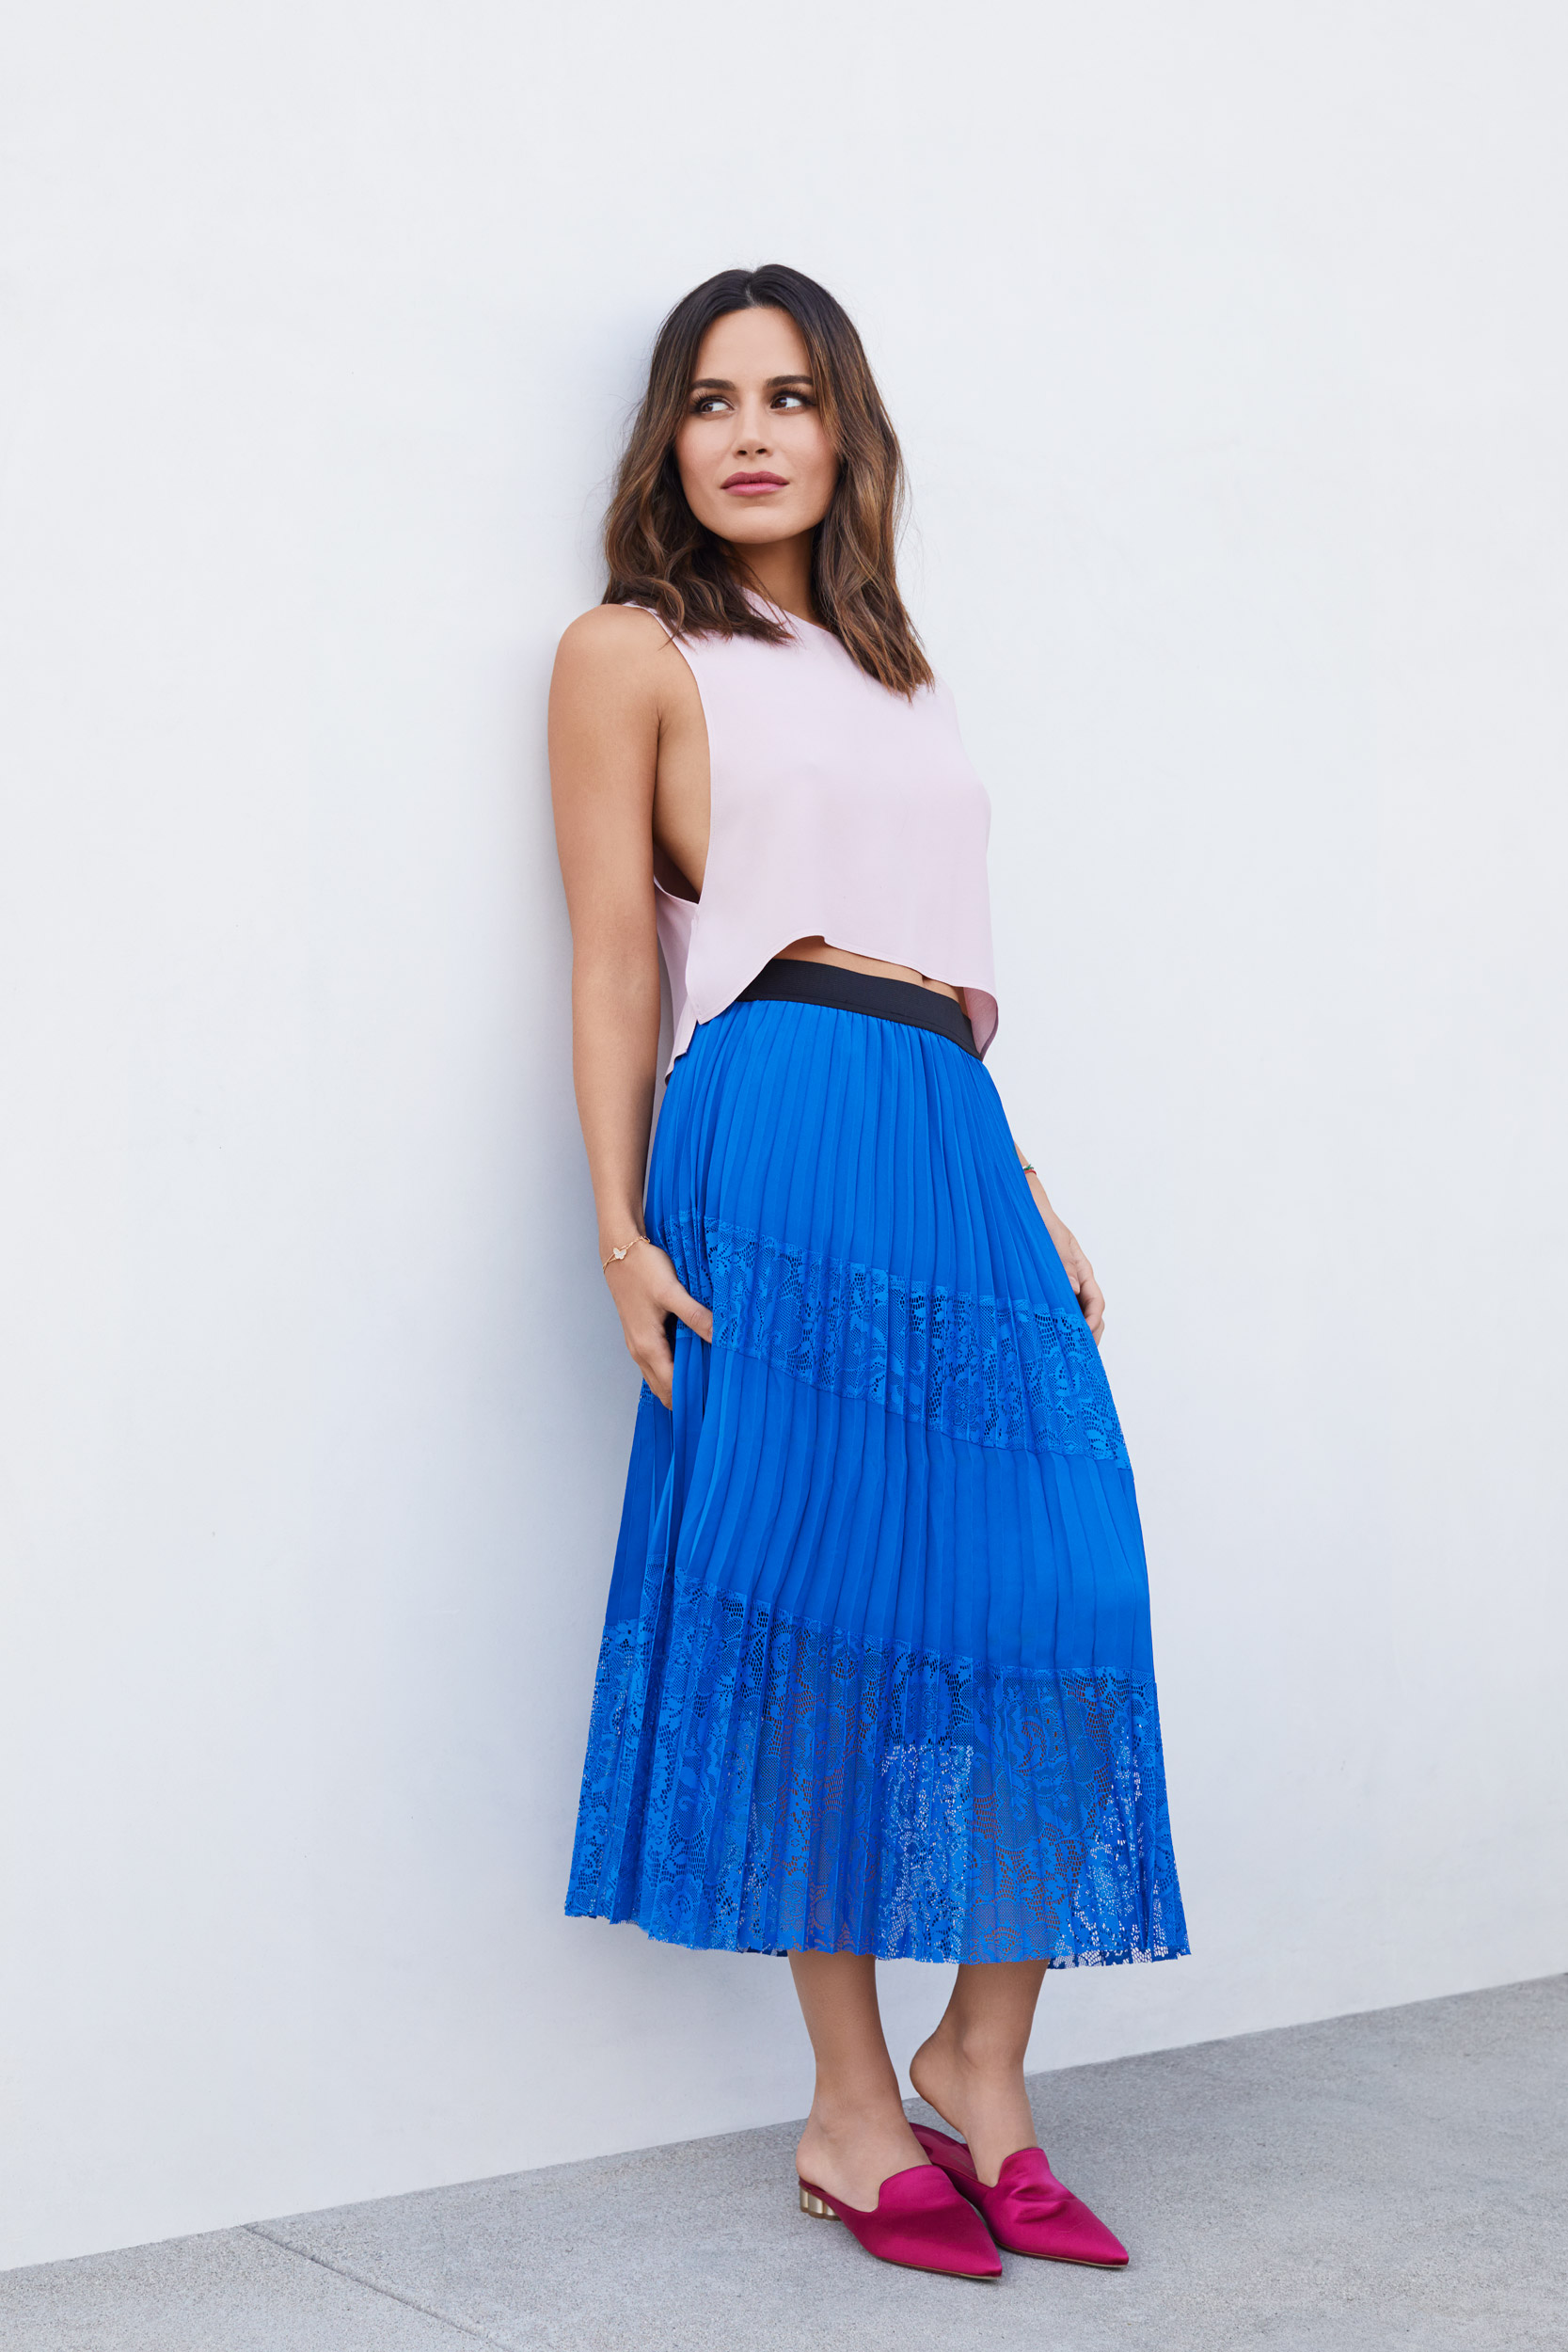 Woman wearing a vibrant blue skirt leaning against a wall